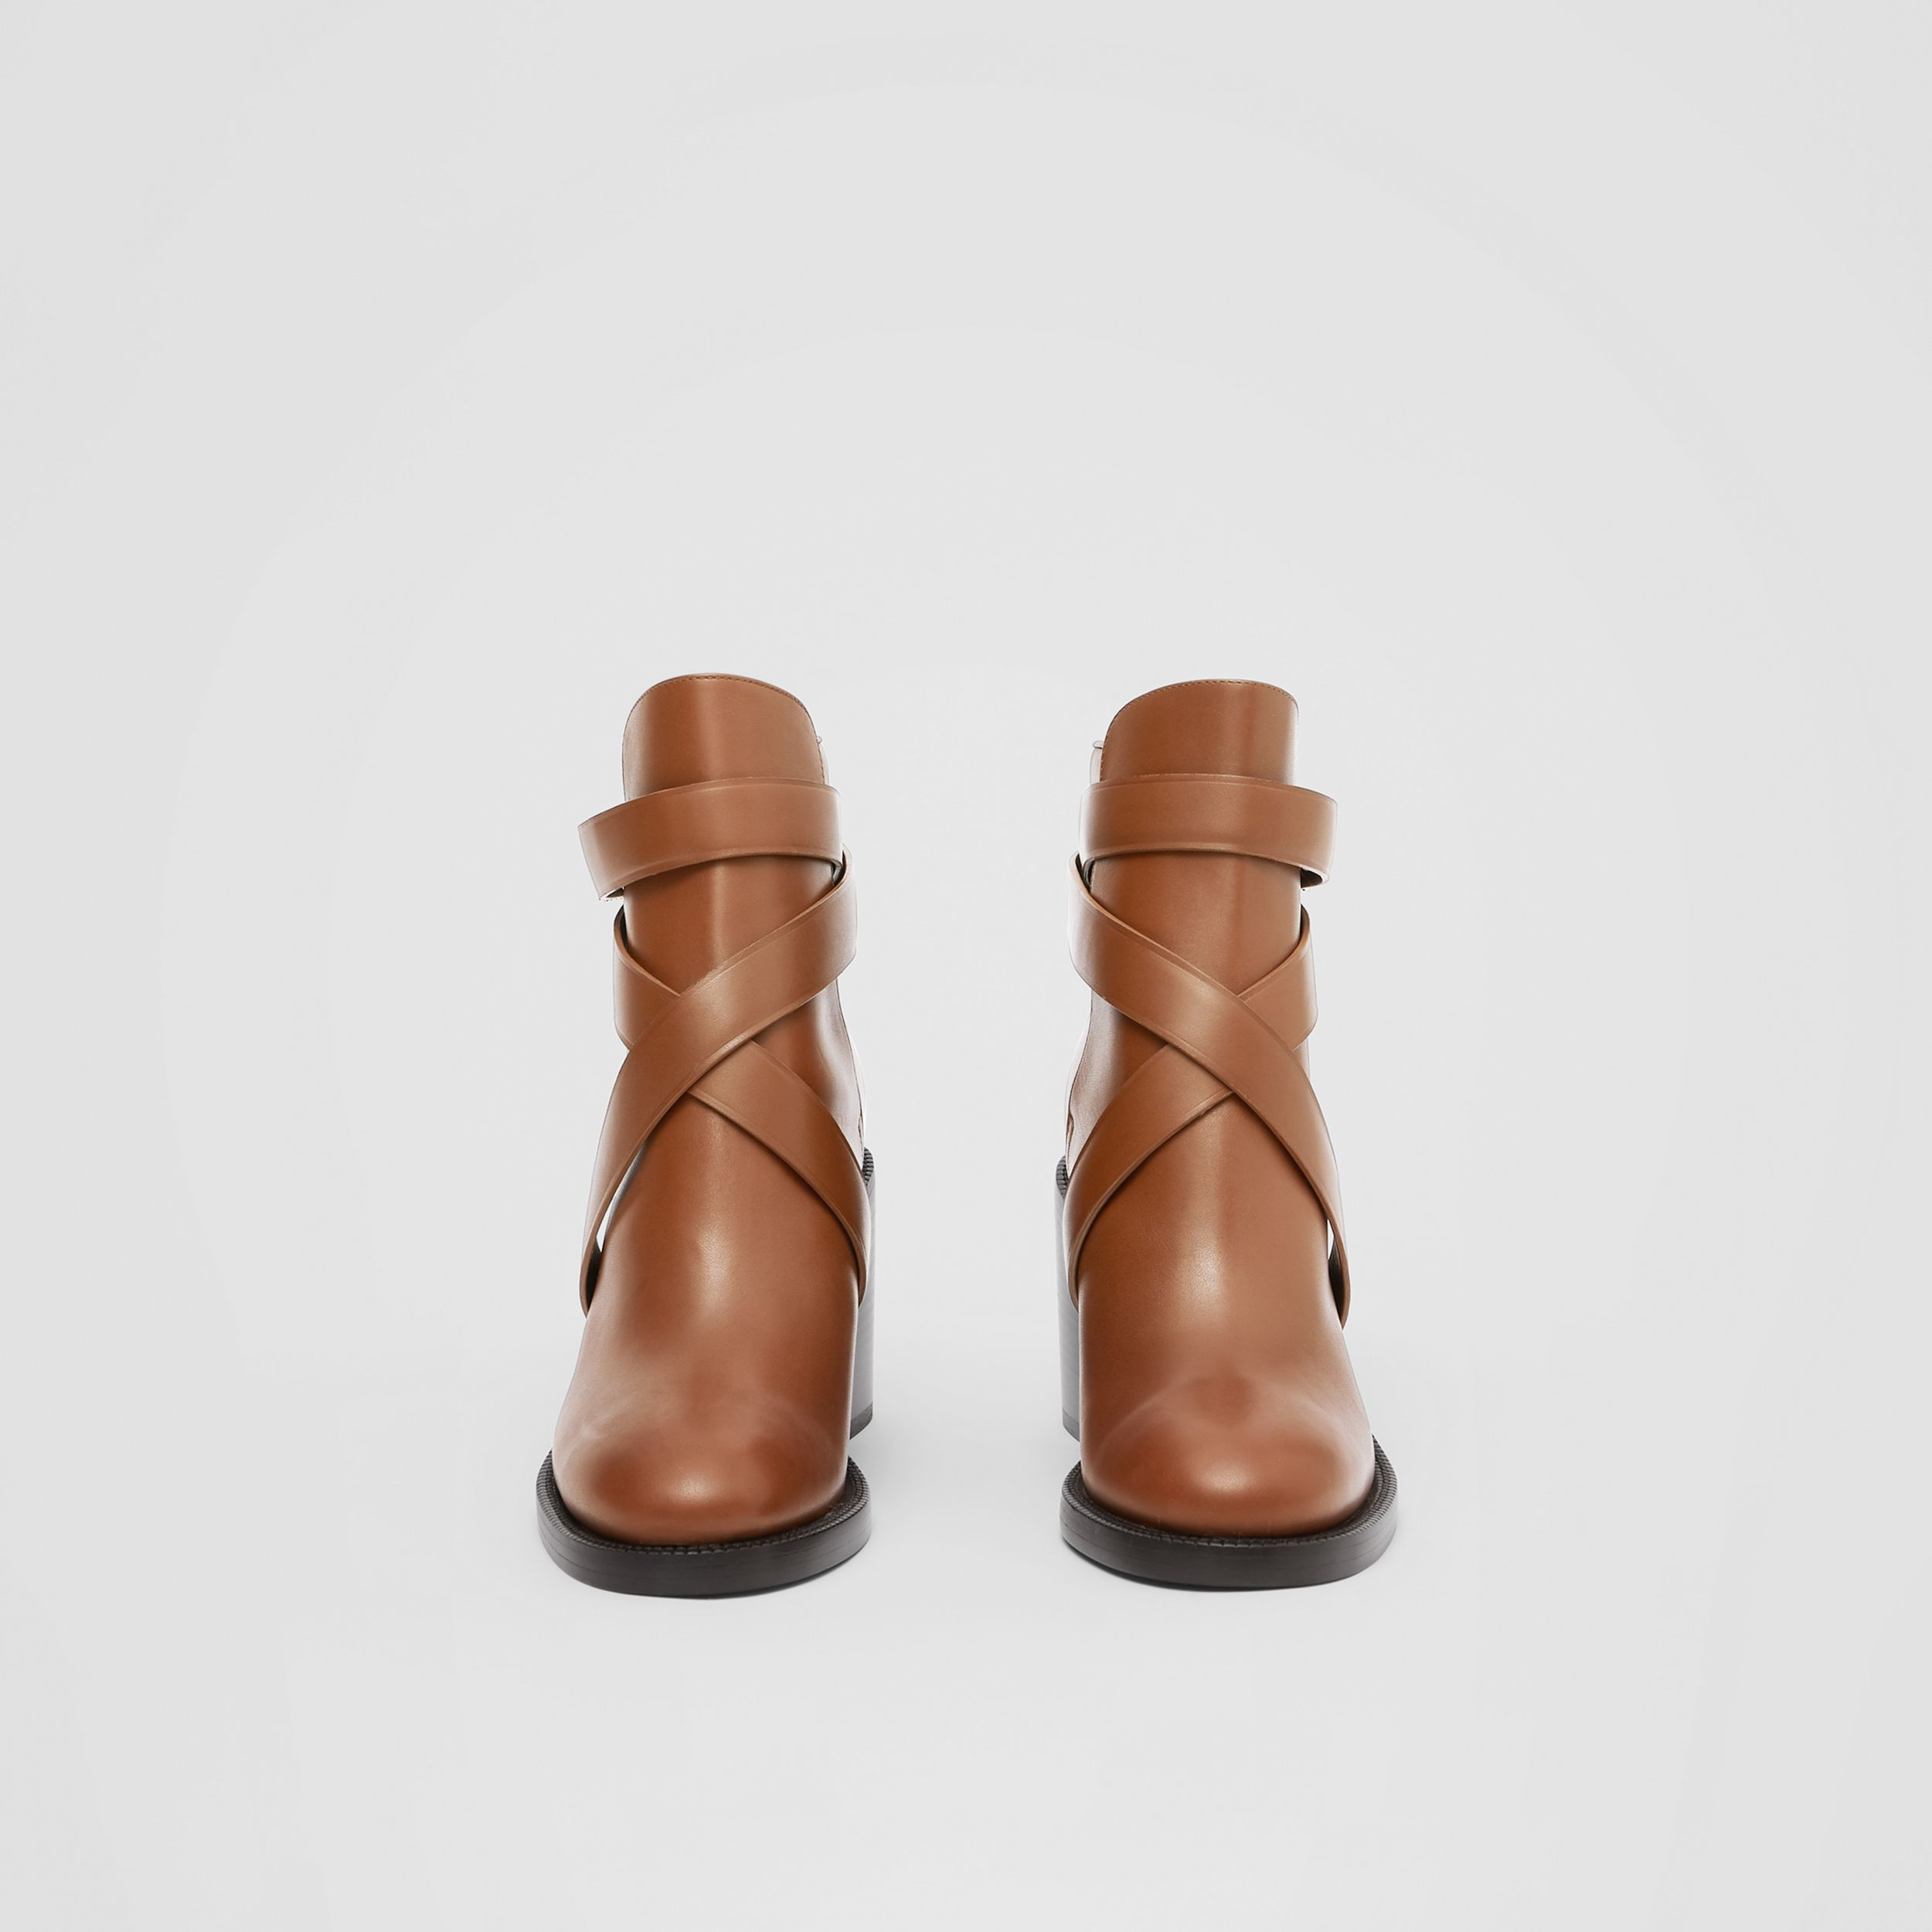 Monogram Motif Leather Ankle Boots in Tan - Women | Burberry United States - 4